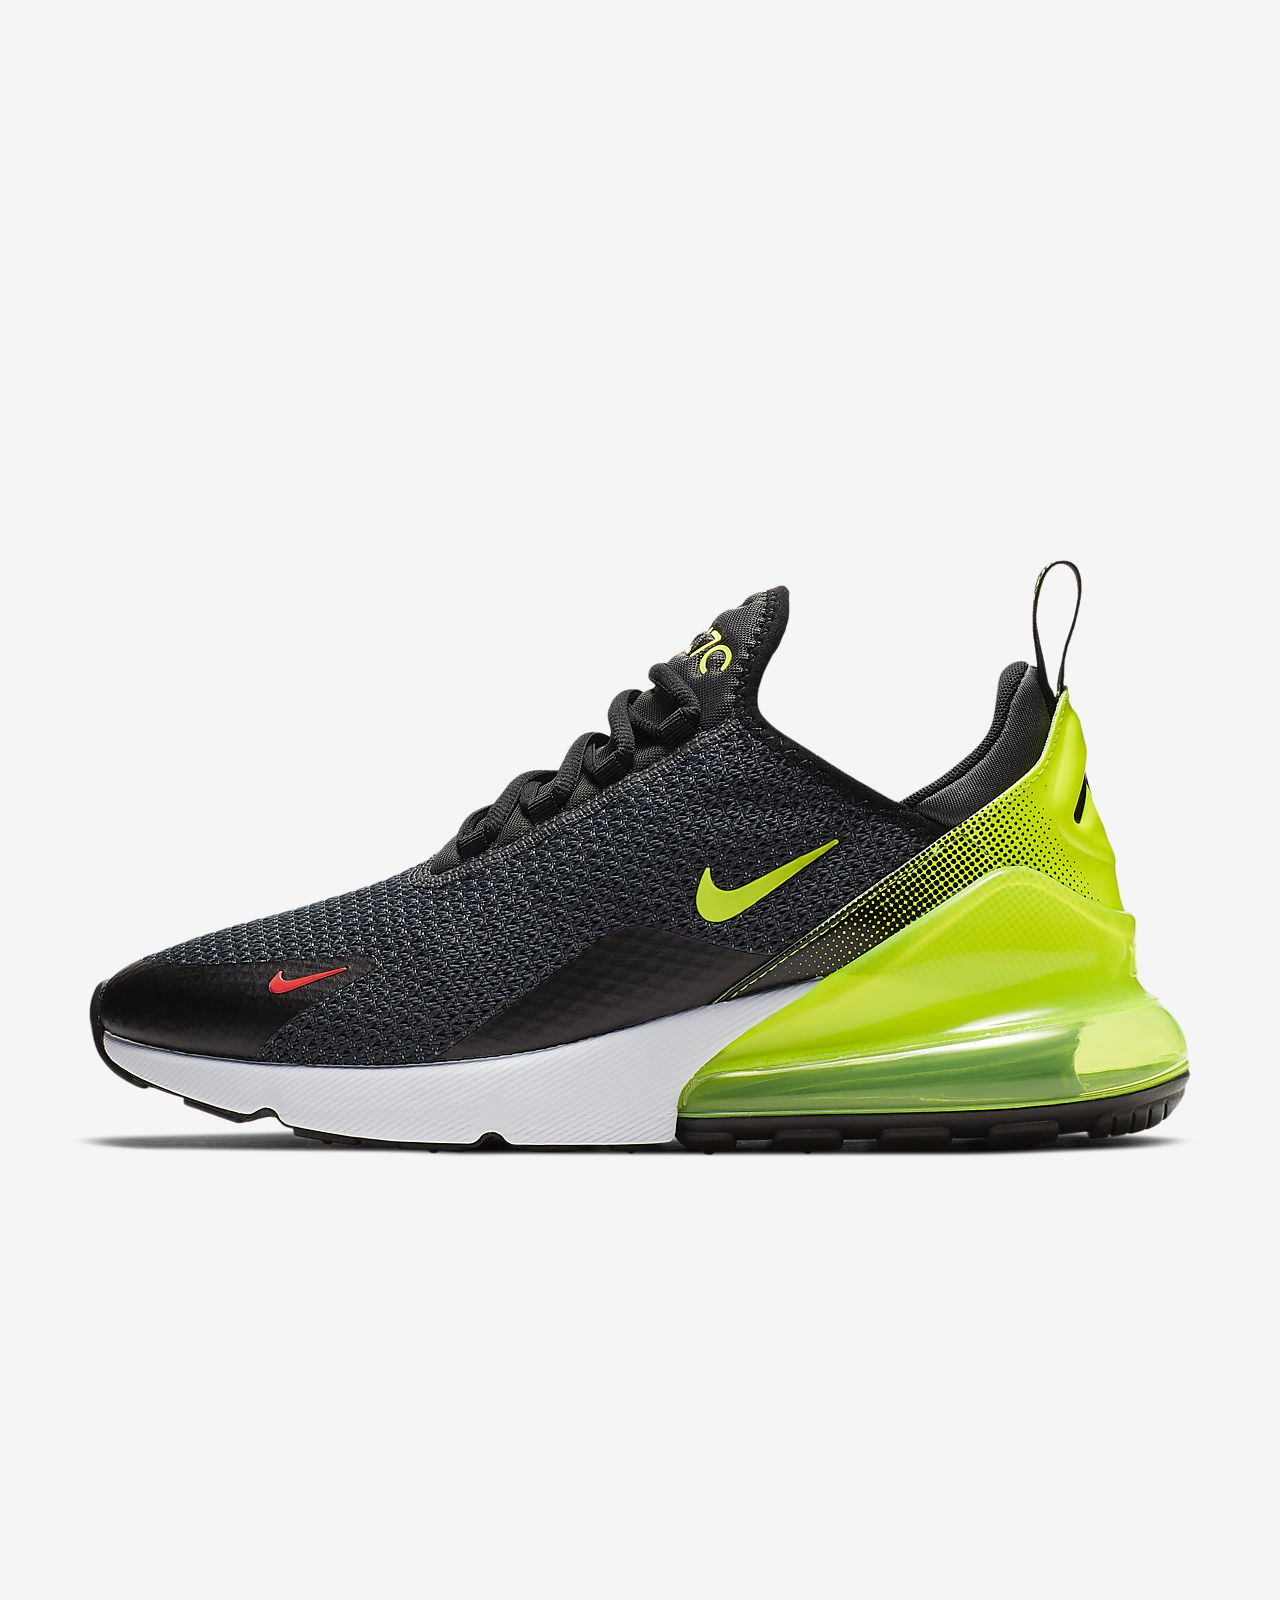 detailed look ac981 19c27 Nike Air Max 270 SE Men's Shoe